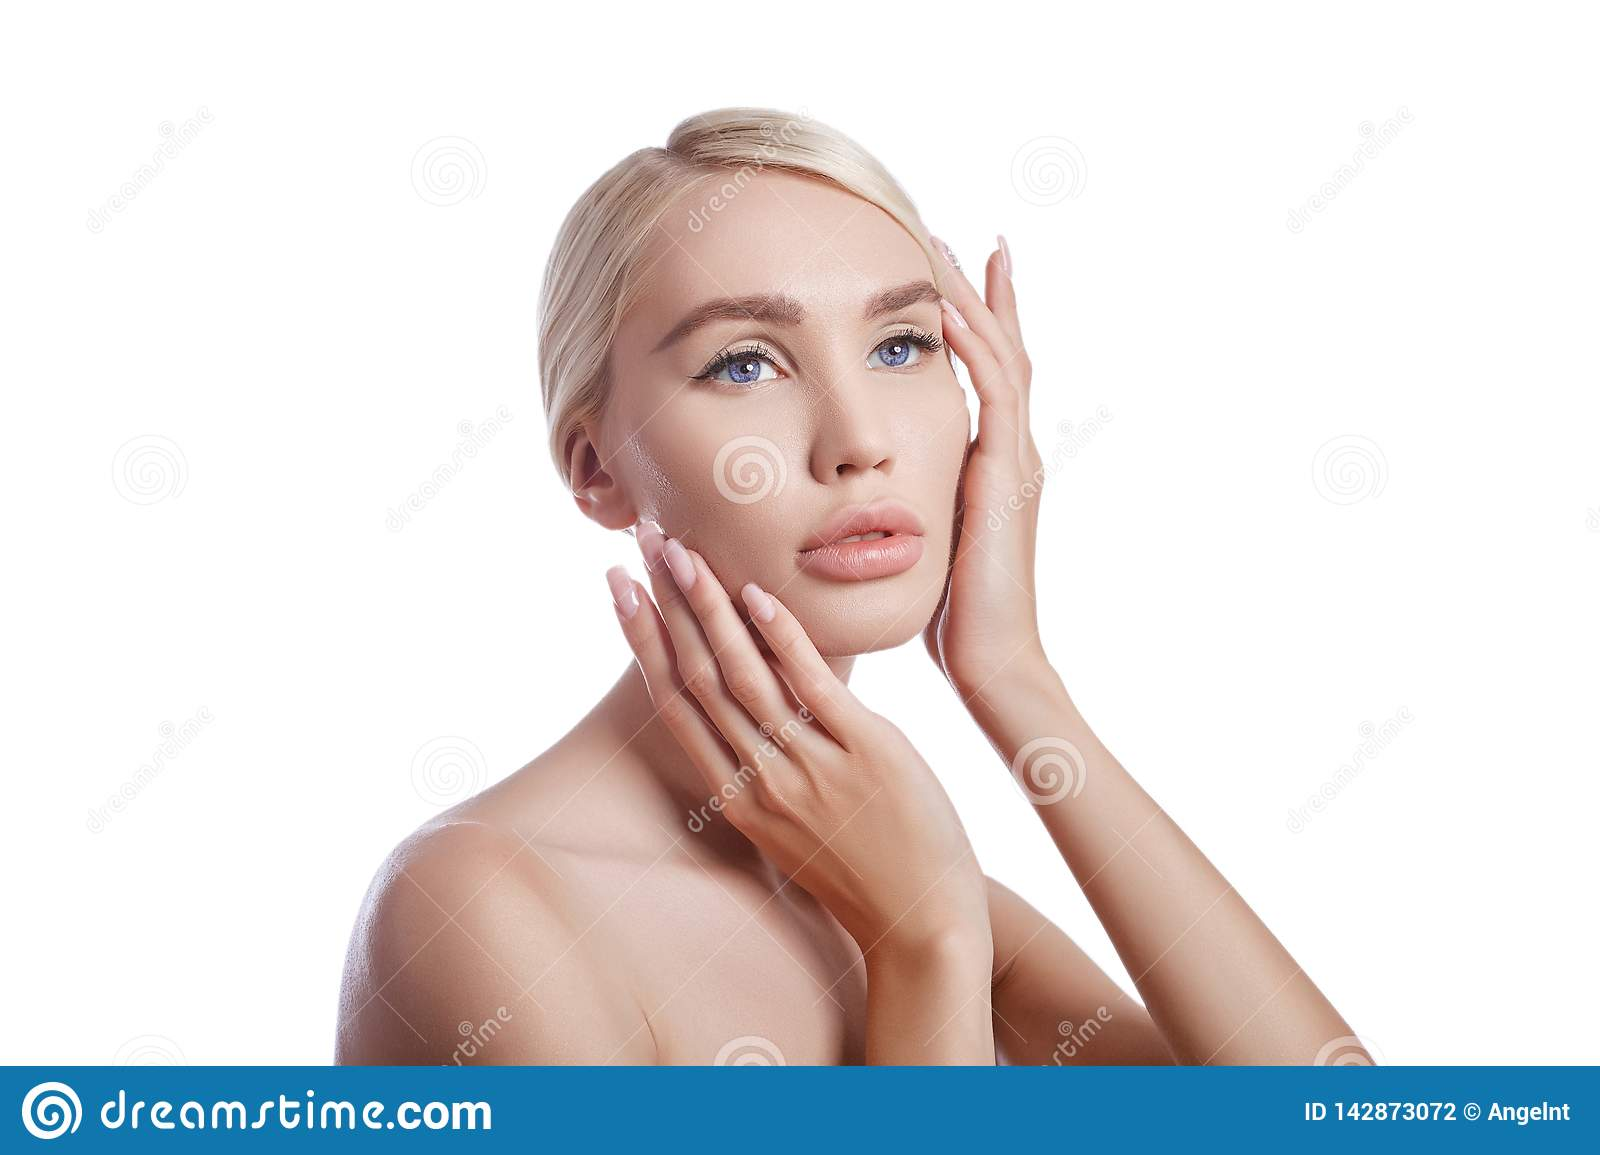 Perfect clean skin of a woman, a cosmetic for wrinkles. Rejuvenating effect on the skin care. Clean pores no wrinkles. Girl blonde